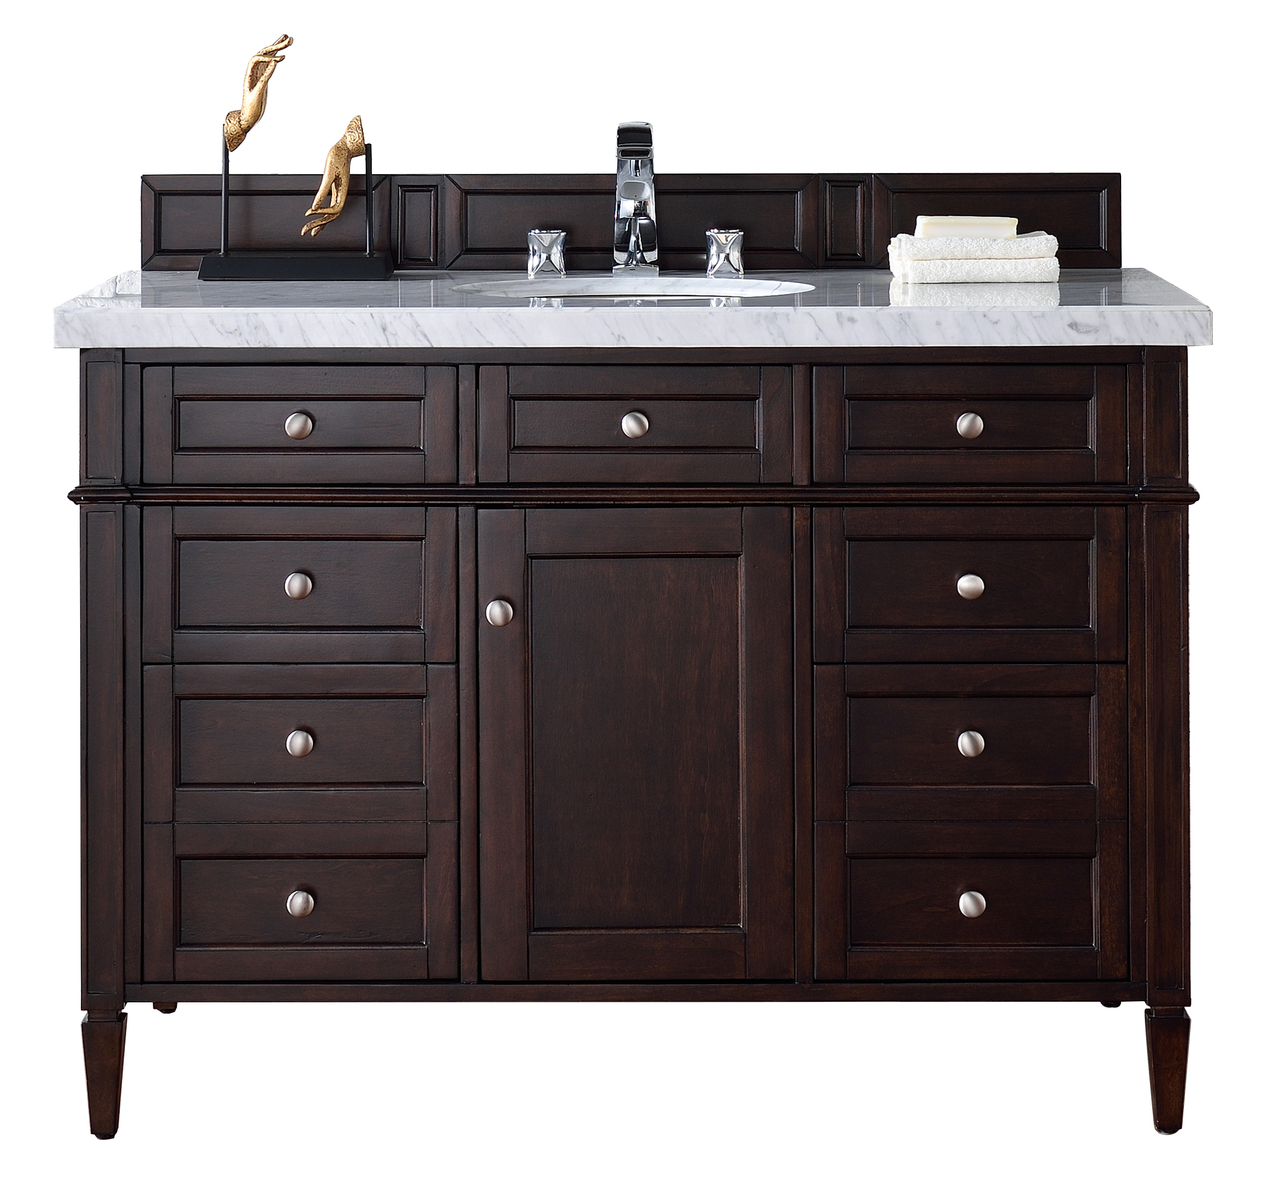 Contemporary 48 inch single bathroom vanity mahogany 48 inch bathroom vanity